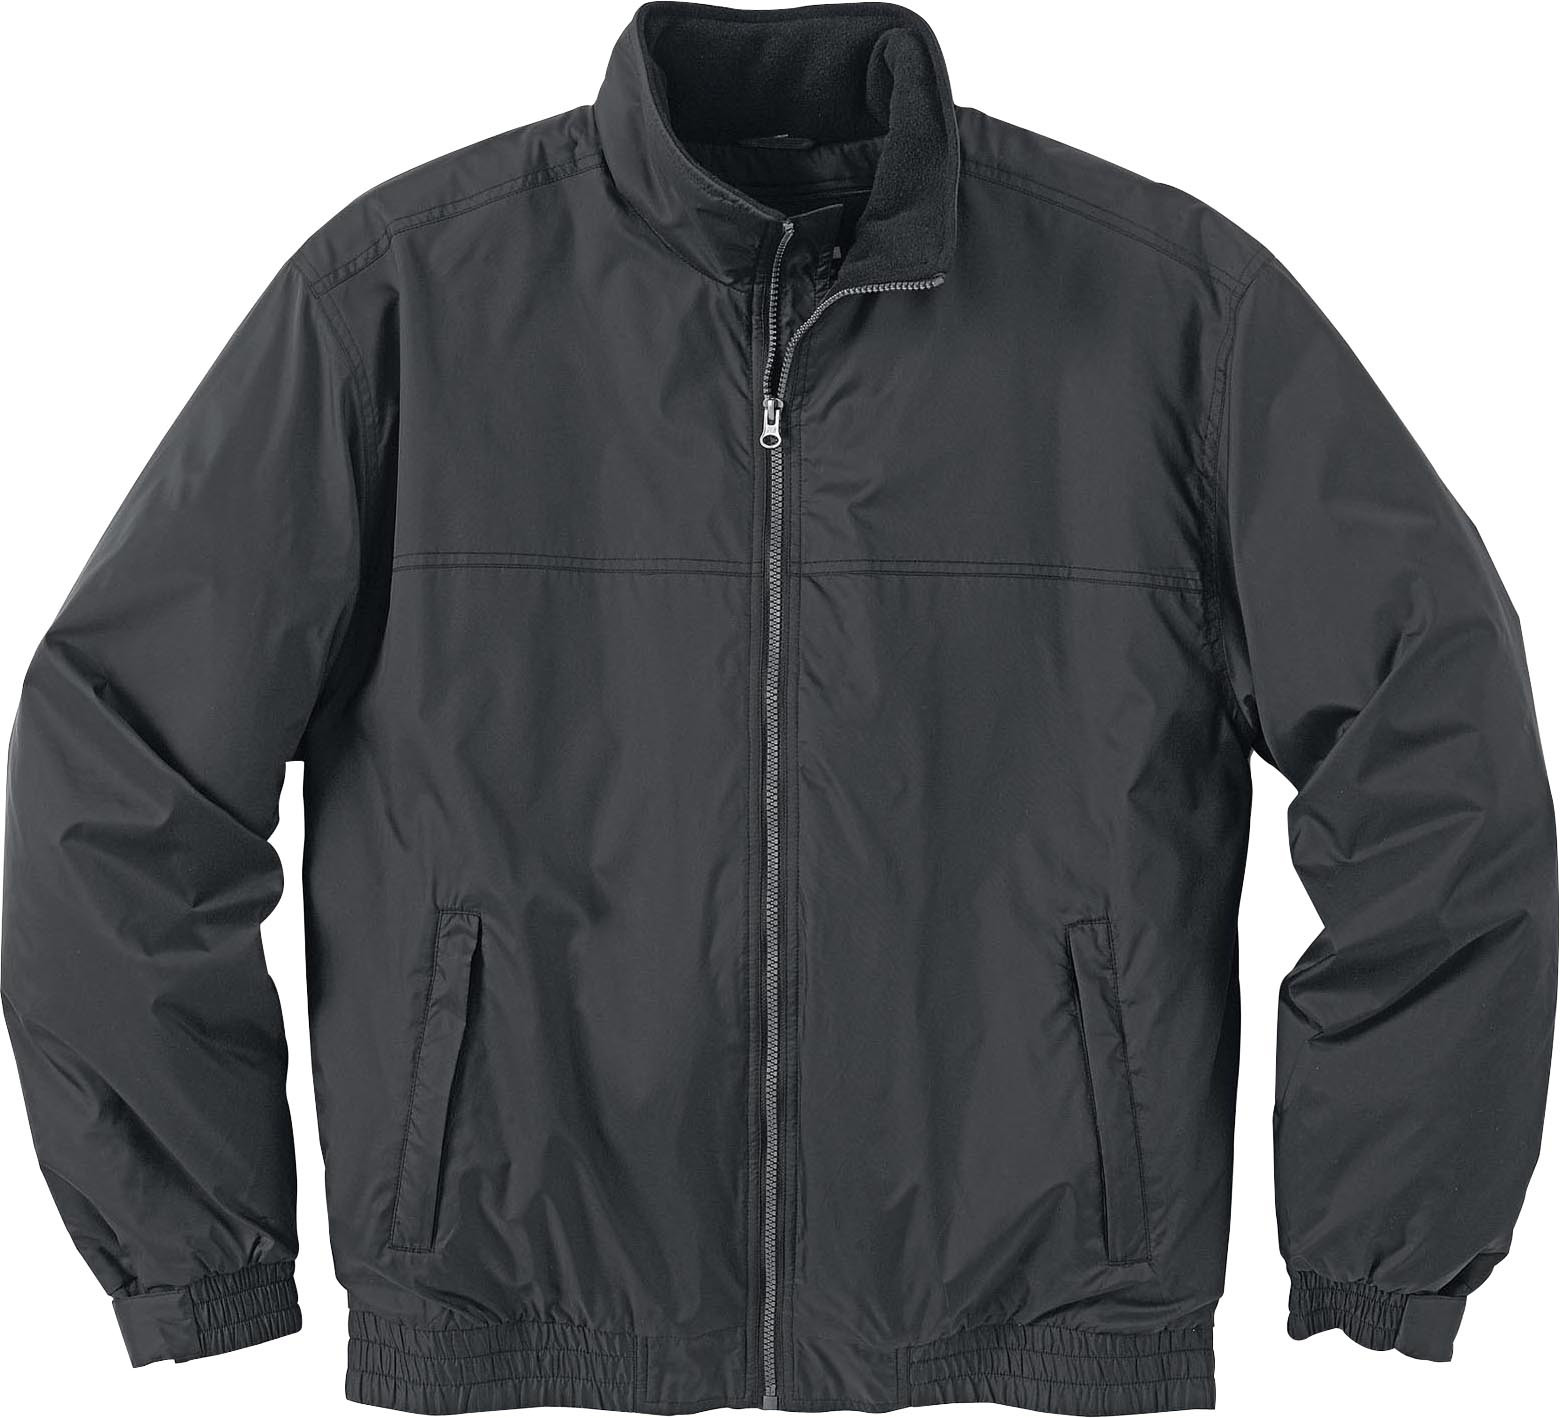 Ash City UTK 2 Warm.Logik 88129 - Men's Insulated Bomber ...